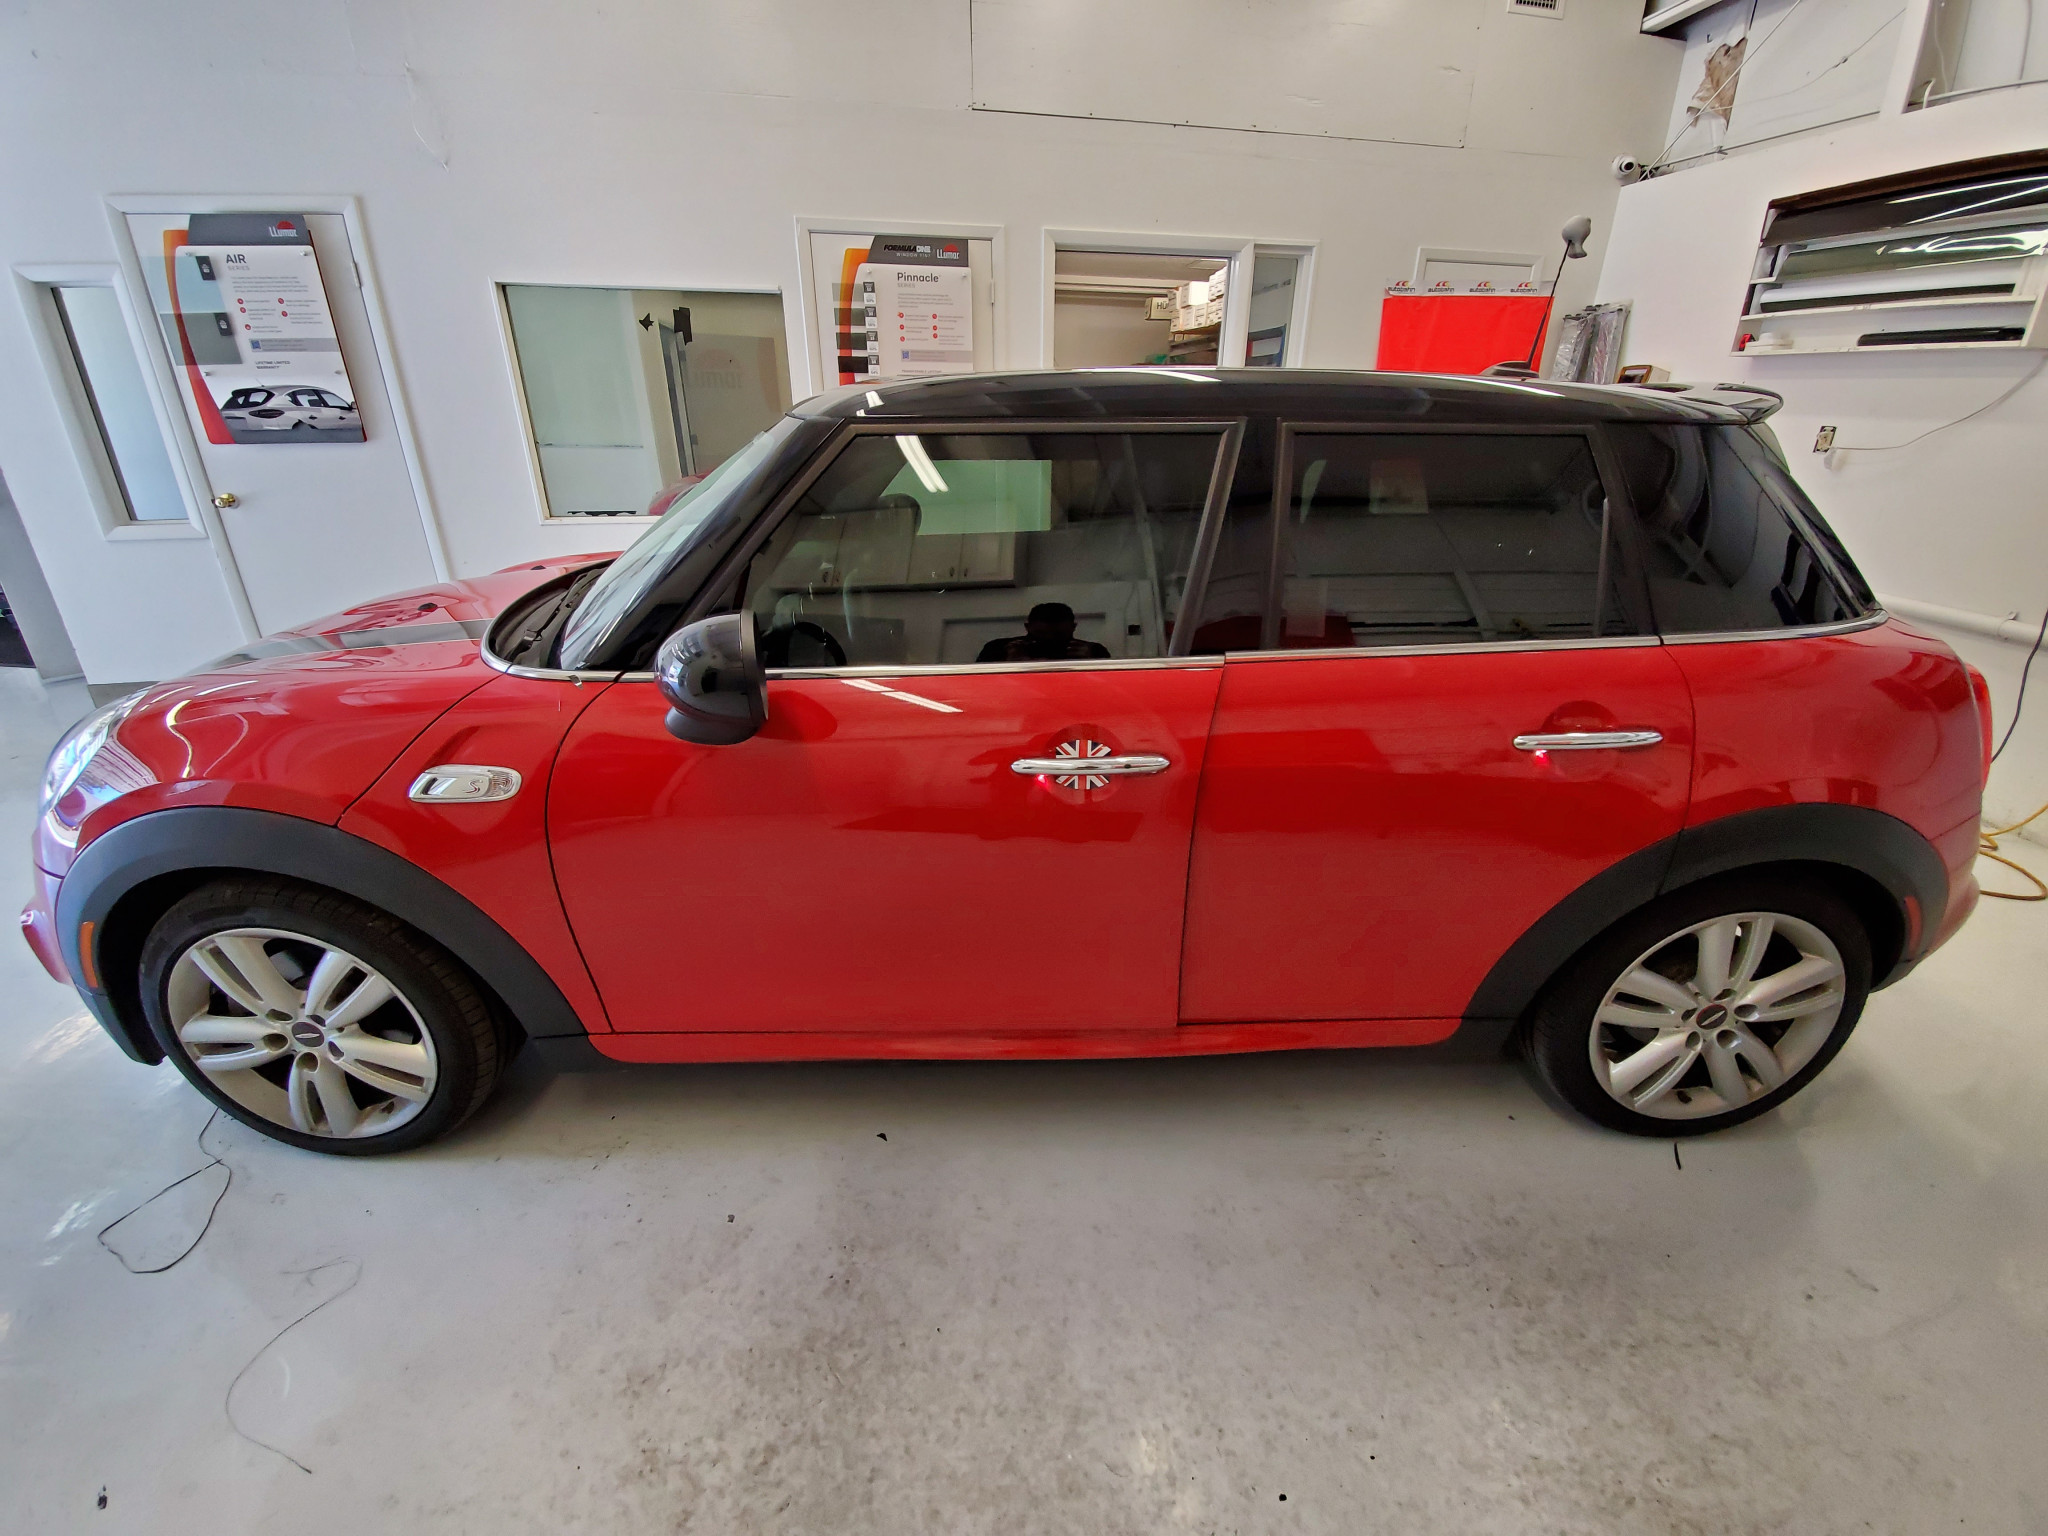 Red Window Tint >> Red Mini Cooper Window Tinting In Orlando Fl Ultimate